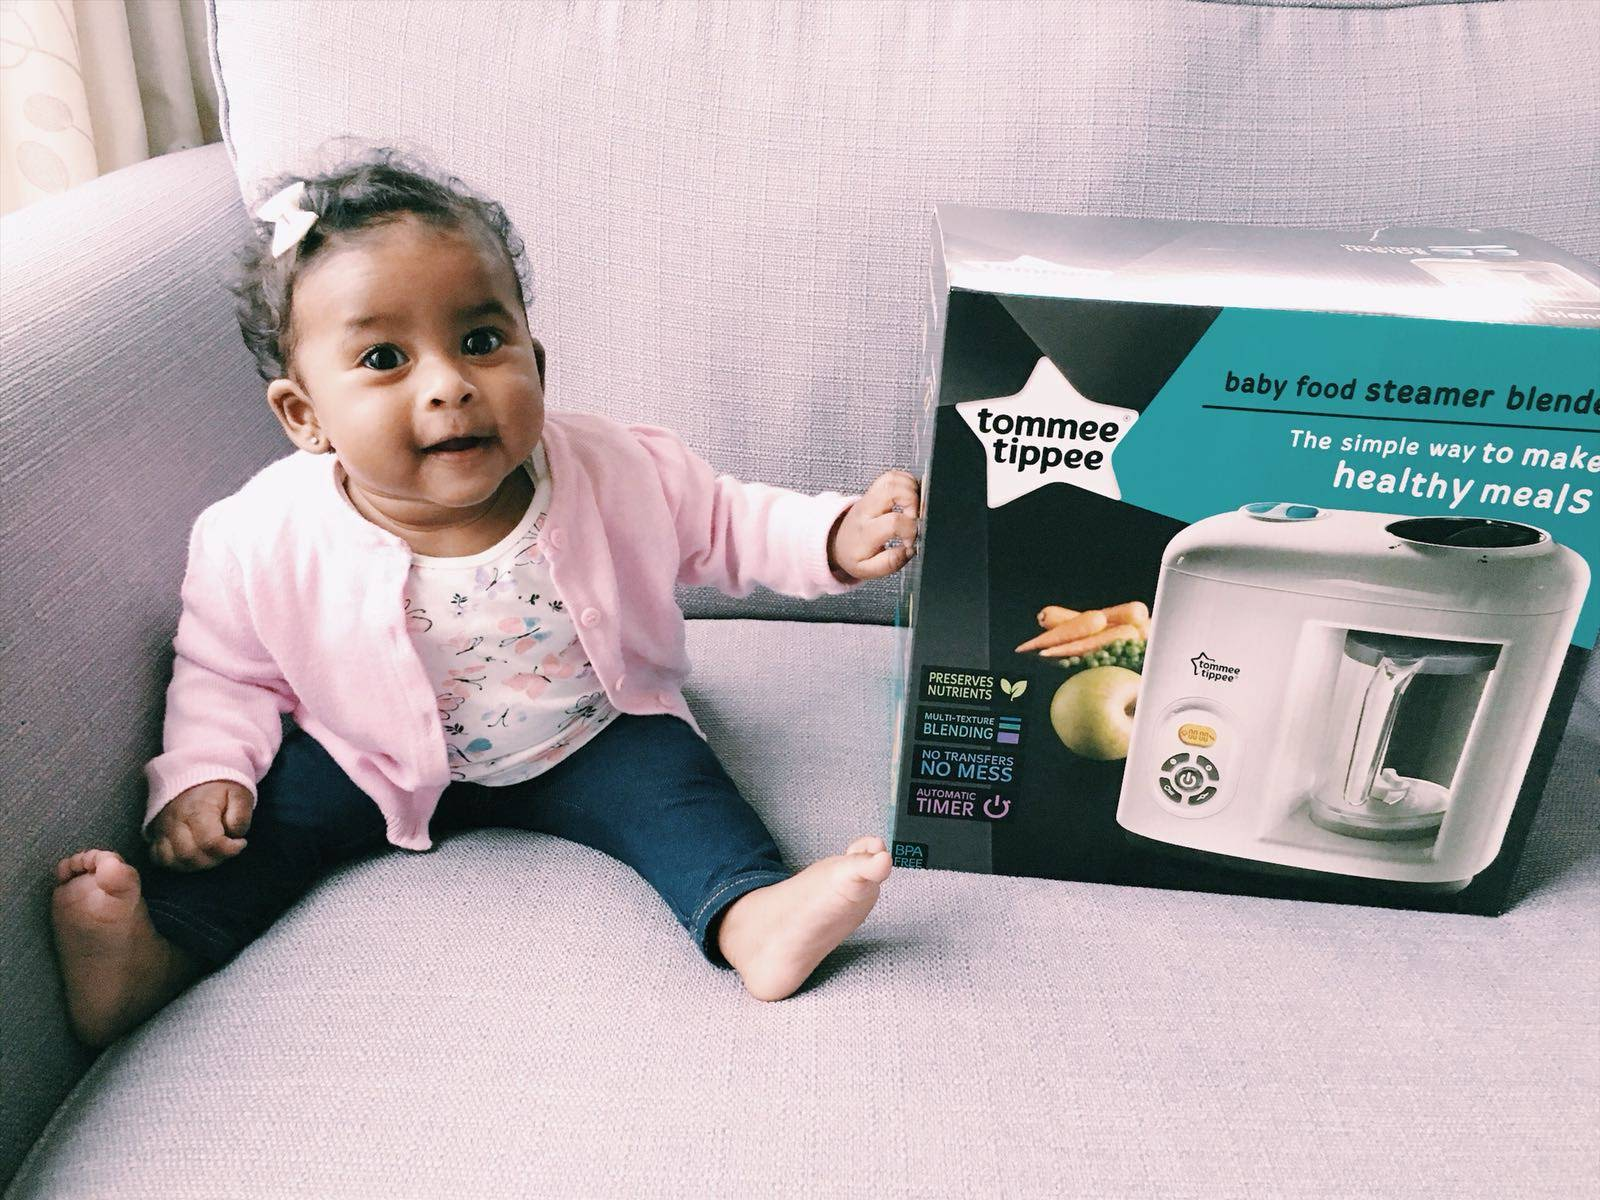 Preparing Baby Food At Home With The Tommee Tippee Baby Food